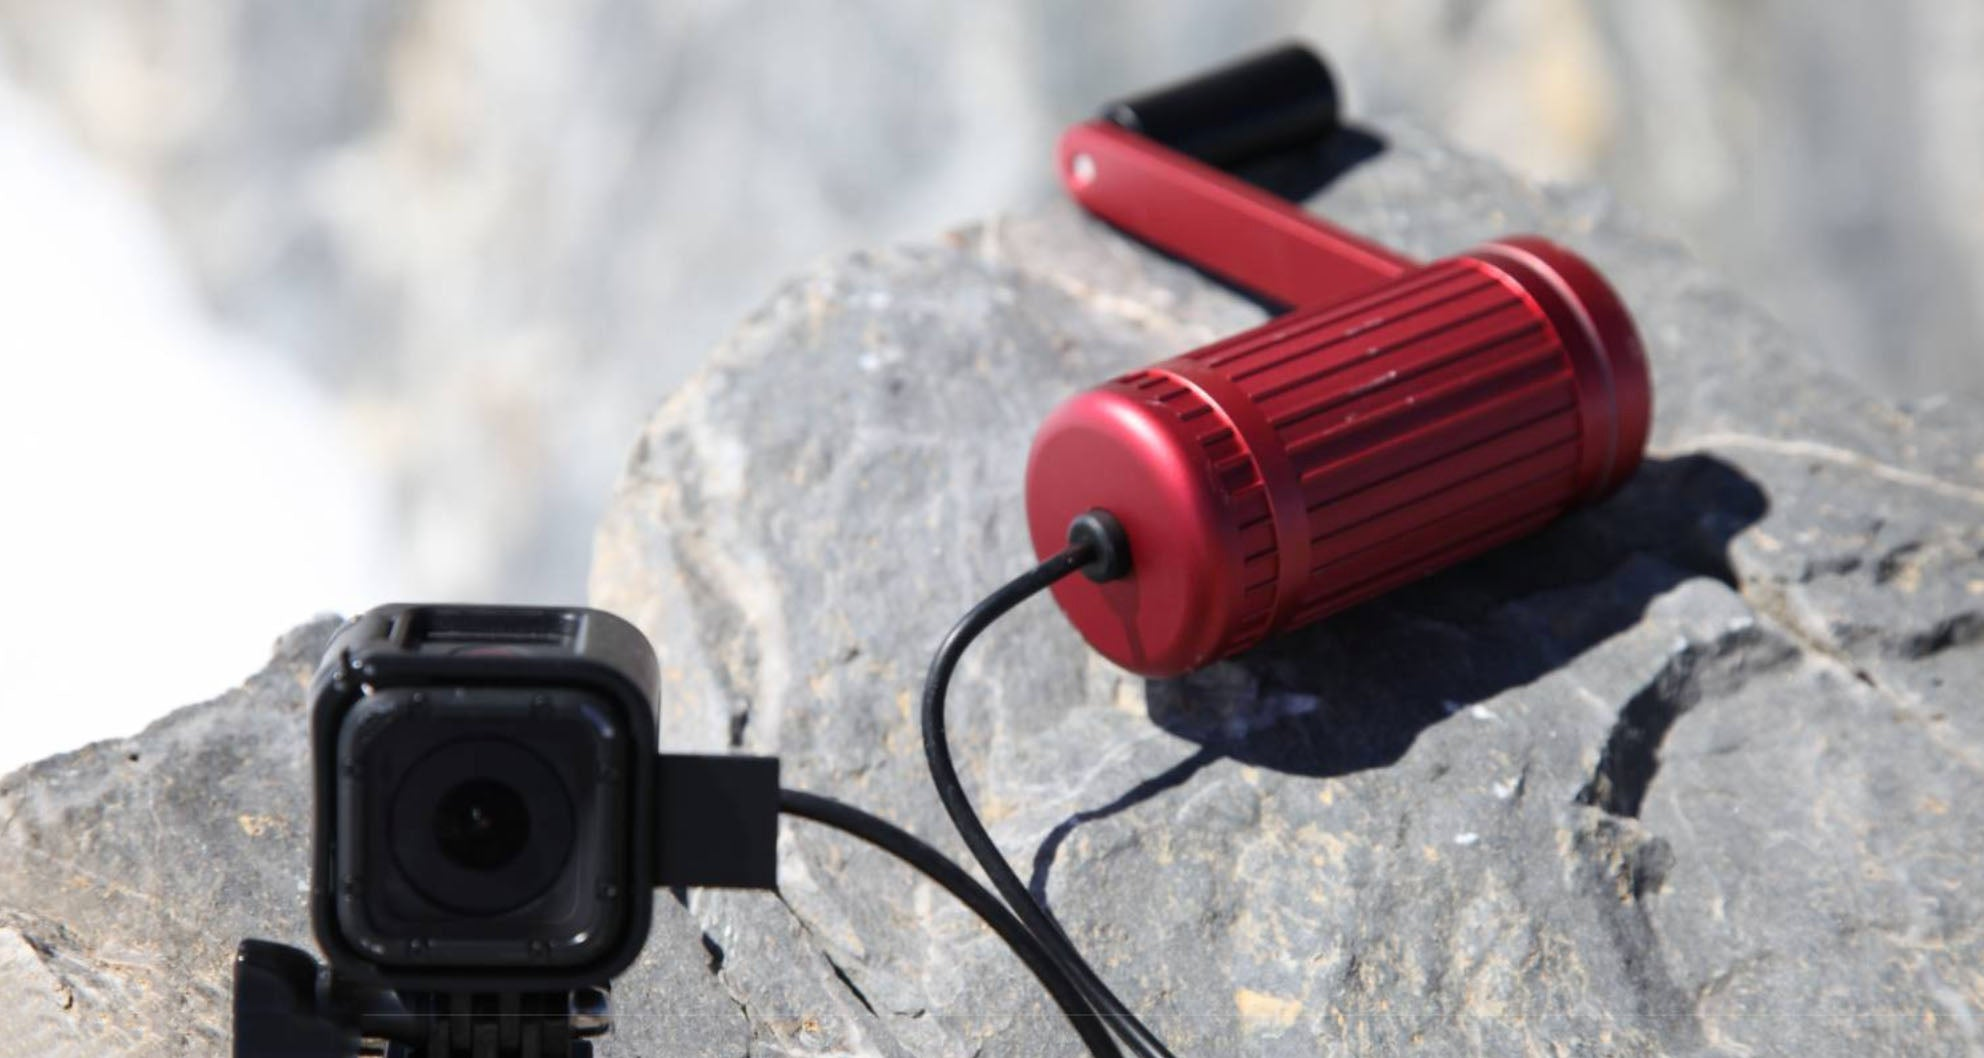 #19 cool gadgets for men: red hand crank charger